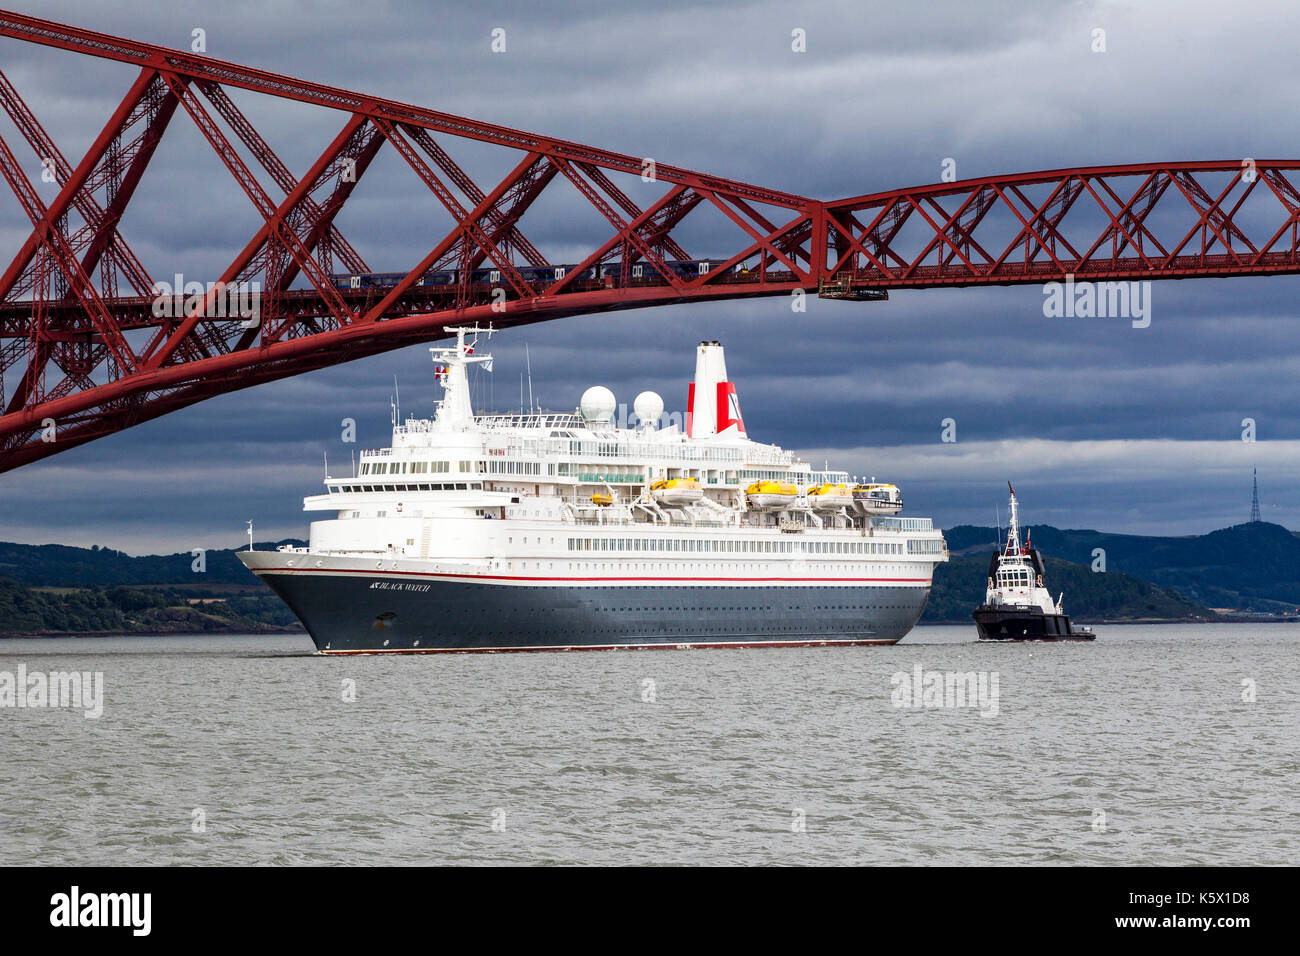 Cruise Liners in the Firth of Forth going under rail bridge - Stock Image